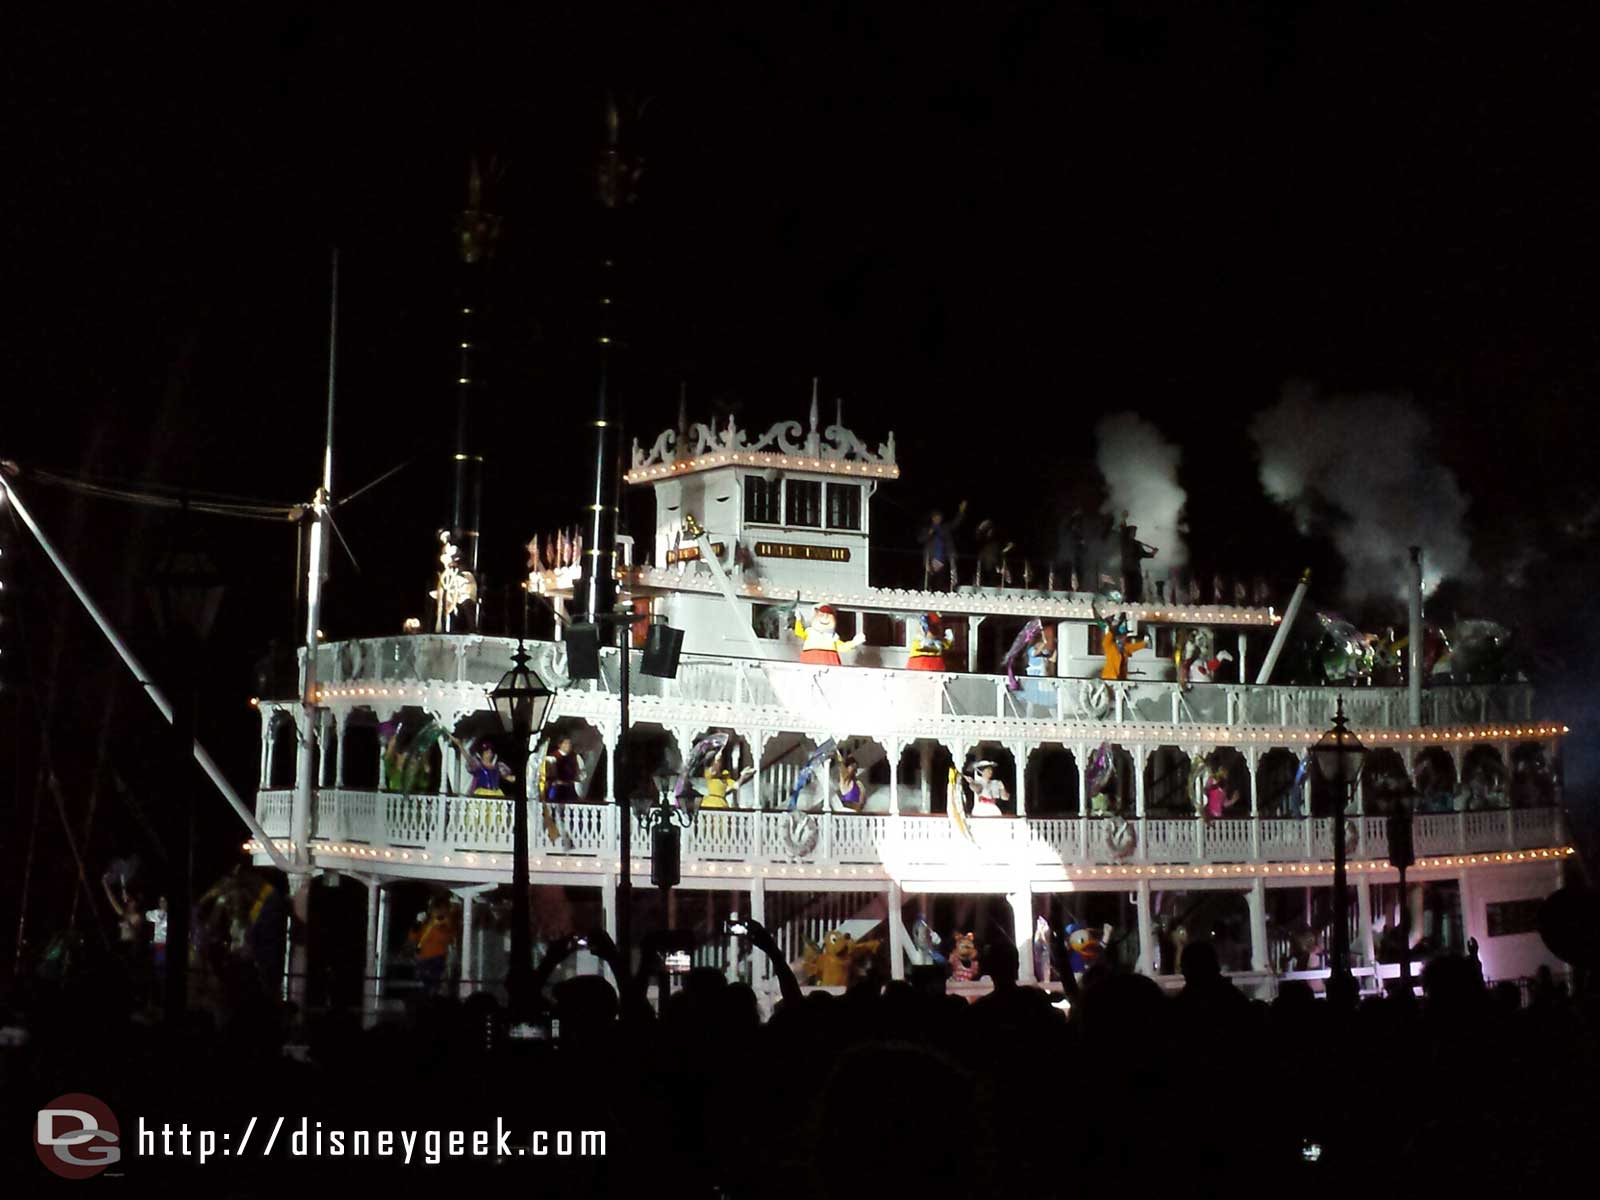 #Fantasmic the Mark Twain steaming by #Disneyland